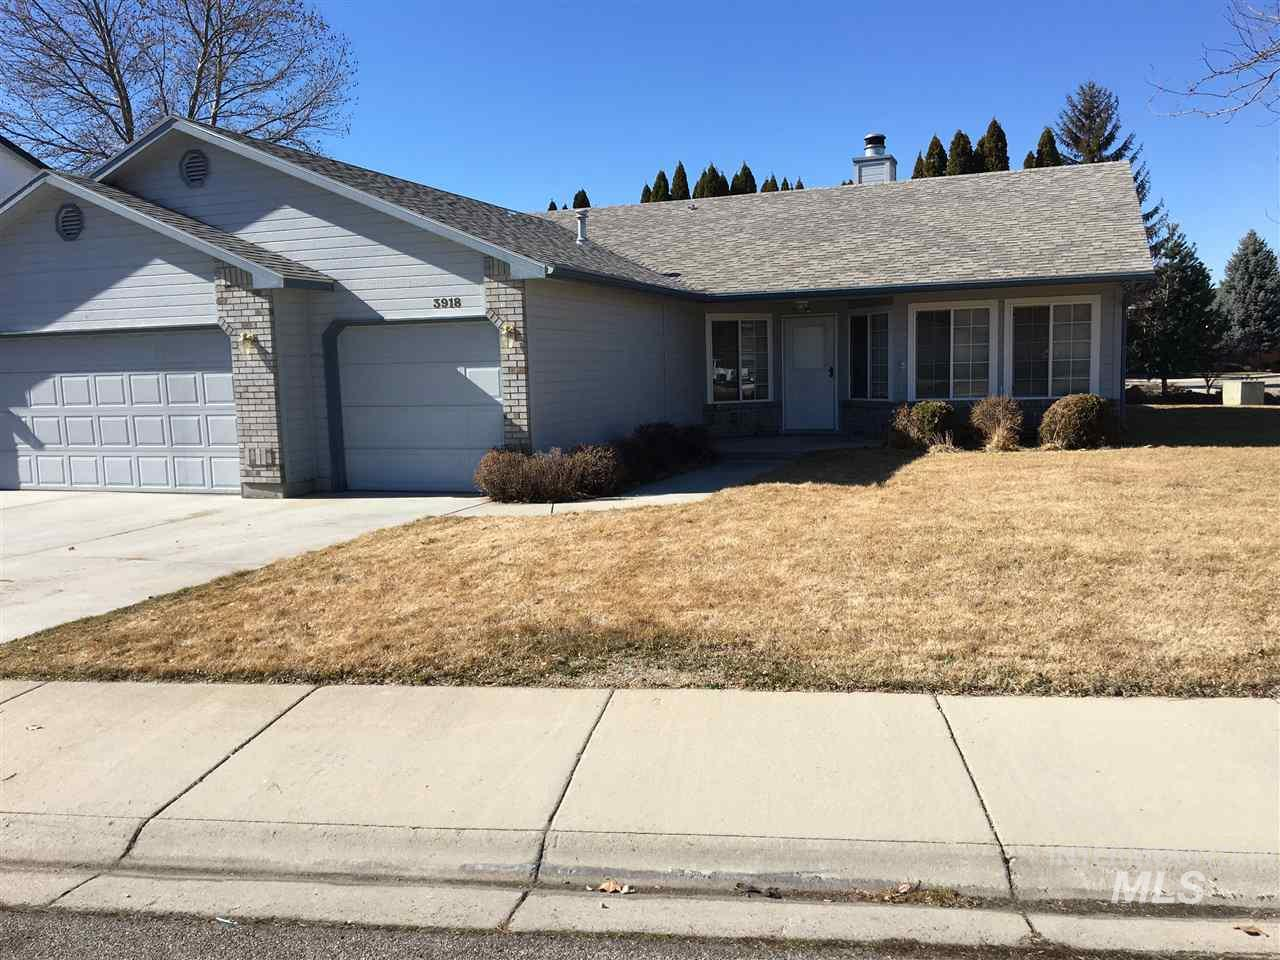 3918 W Big Creek, Meridian, Idaho 83642, 3 Bedrooms, 2 Bathrooms, Rental For Rent, Price $1,495, 98721597